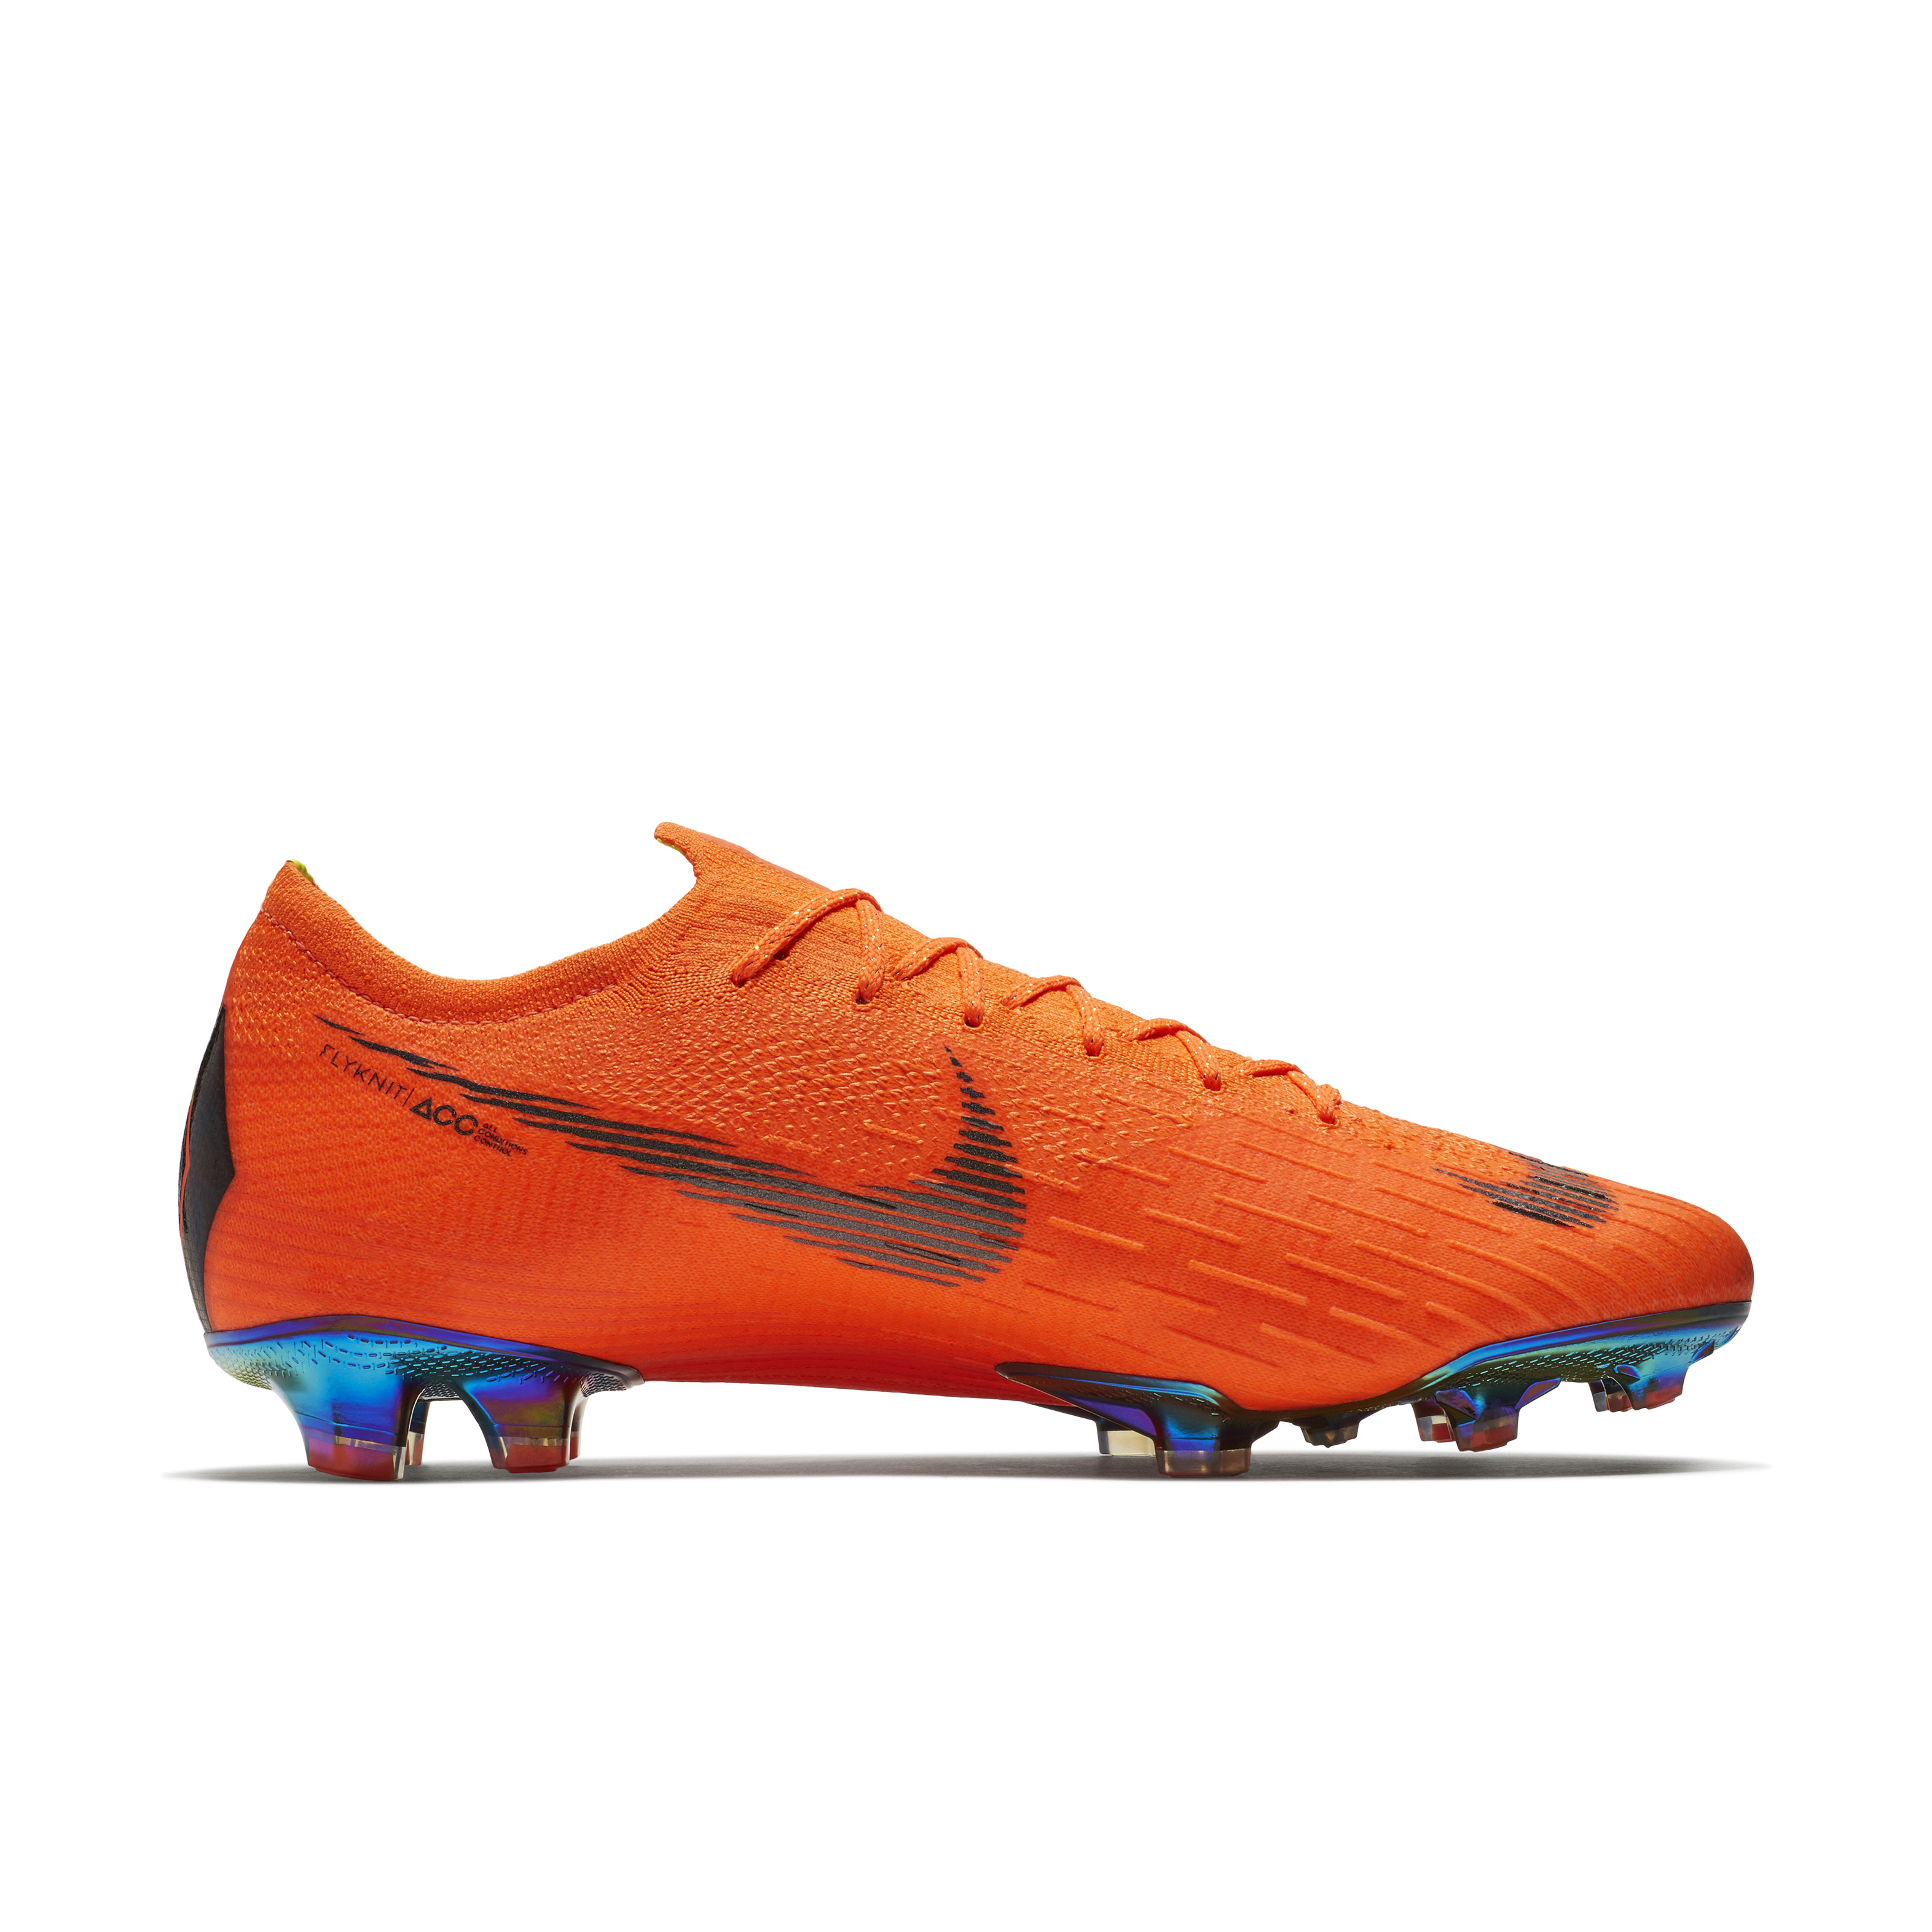 Nike Soccer Shoes Academy